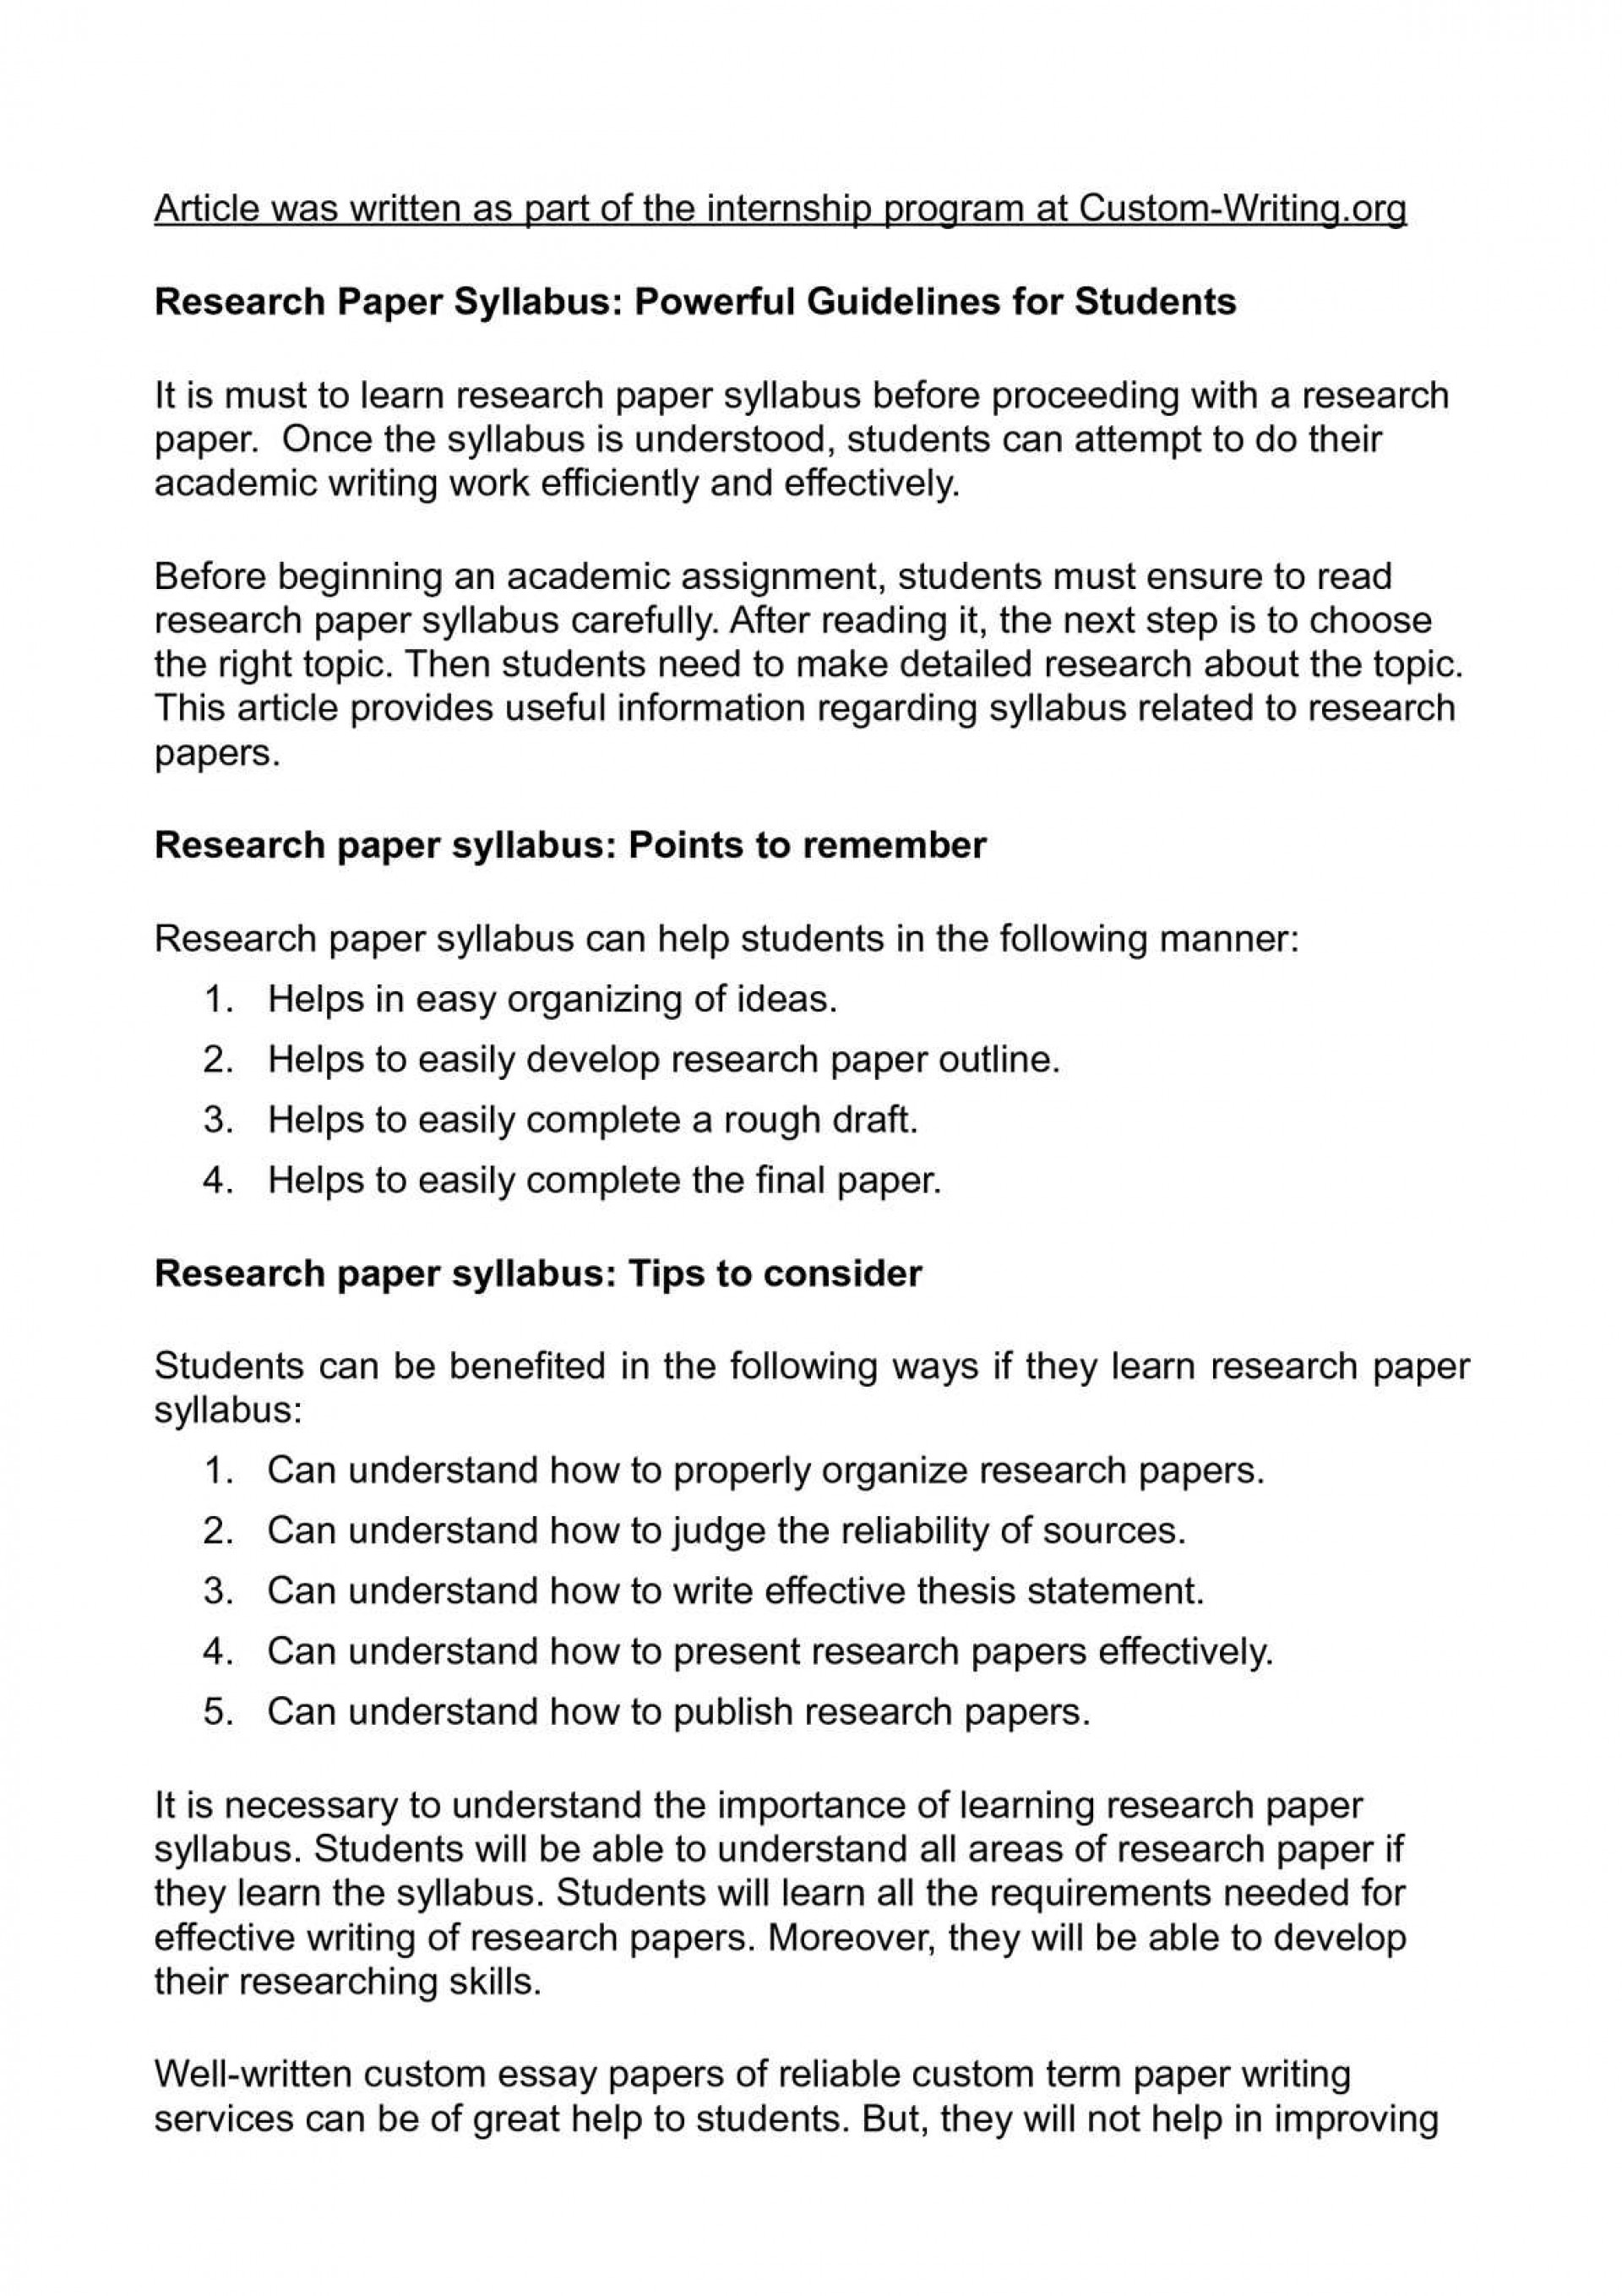 004 Provides Students With Custom Written Papers Research Paper Phenomenal Term 1920